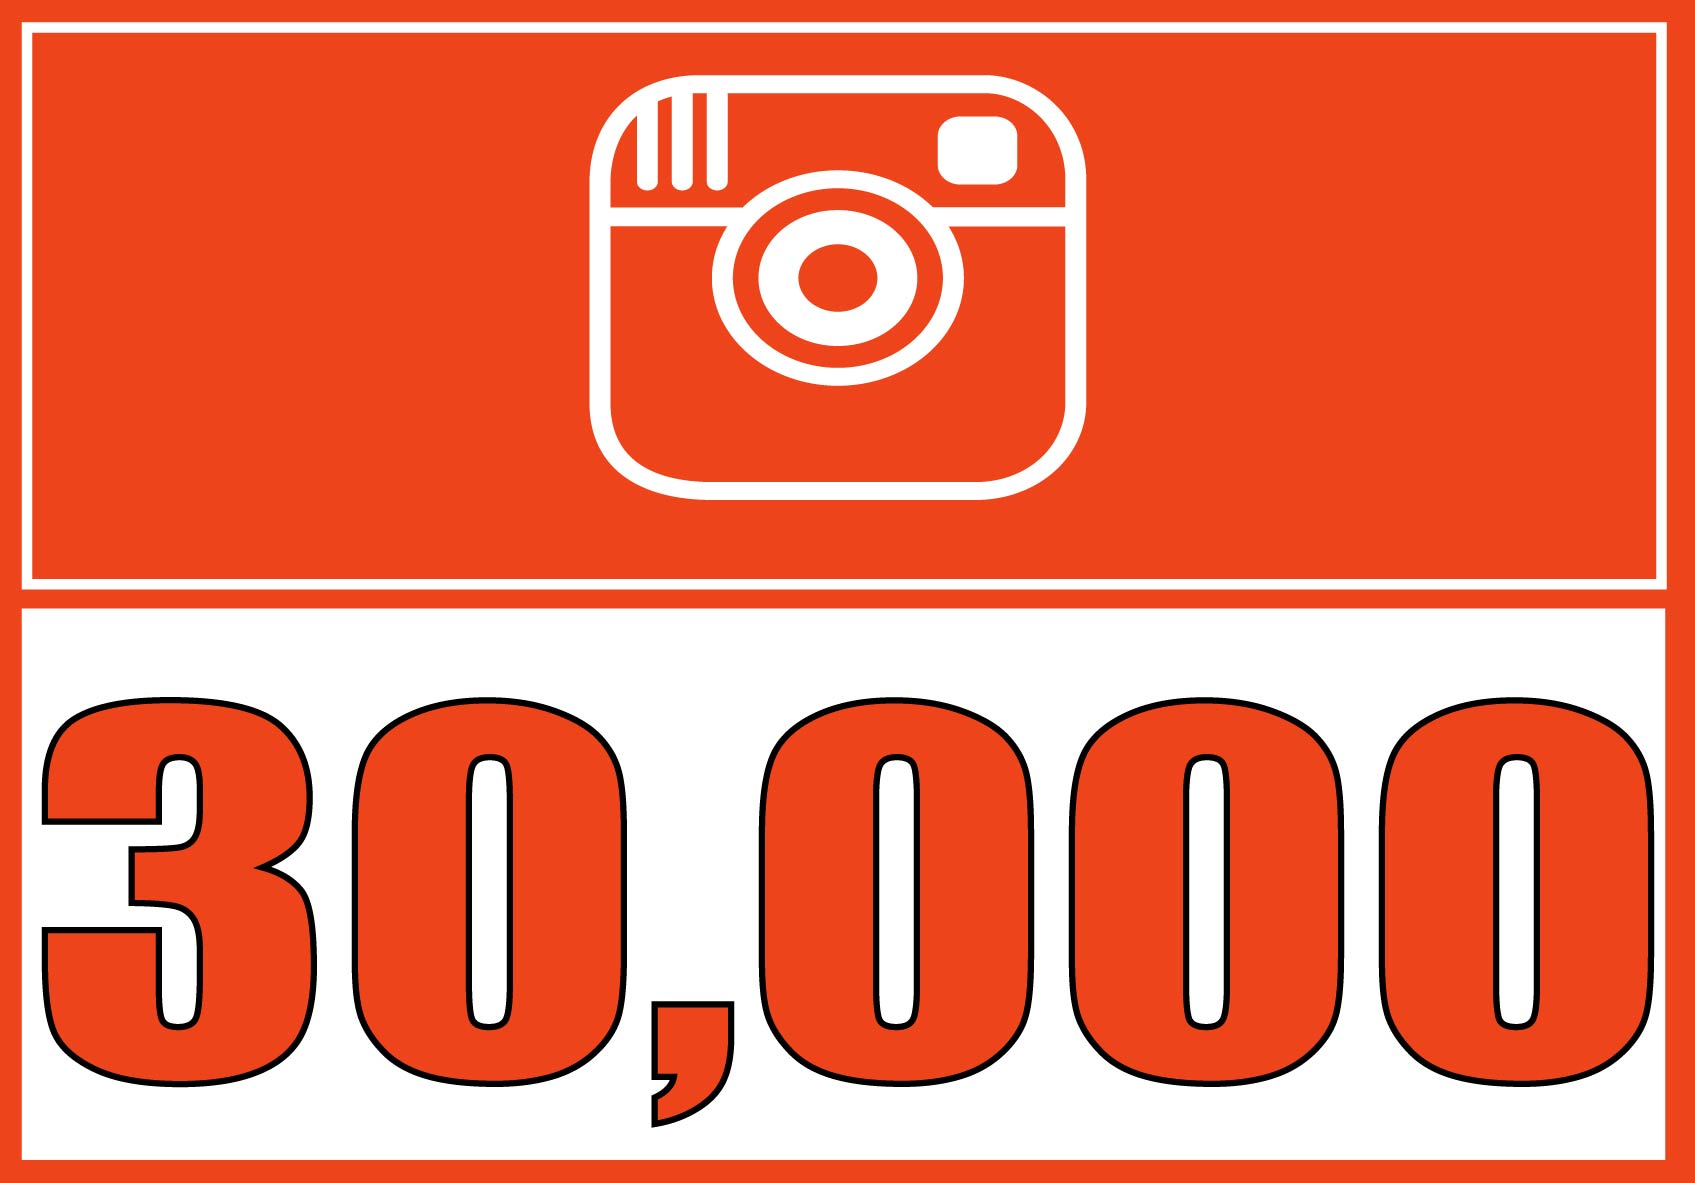 Instagram 30,000 Instant Fast (LIKES)